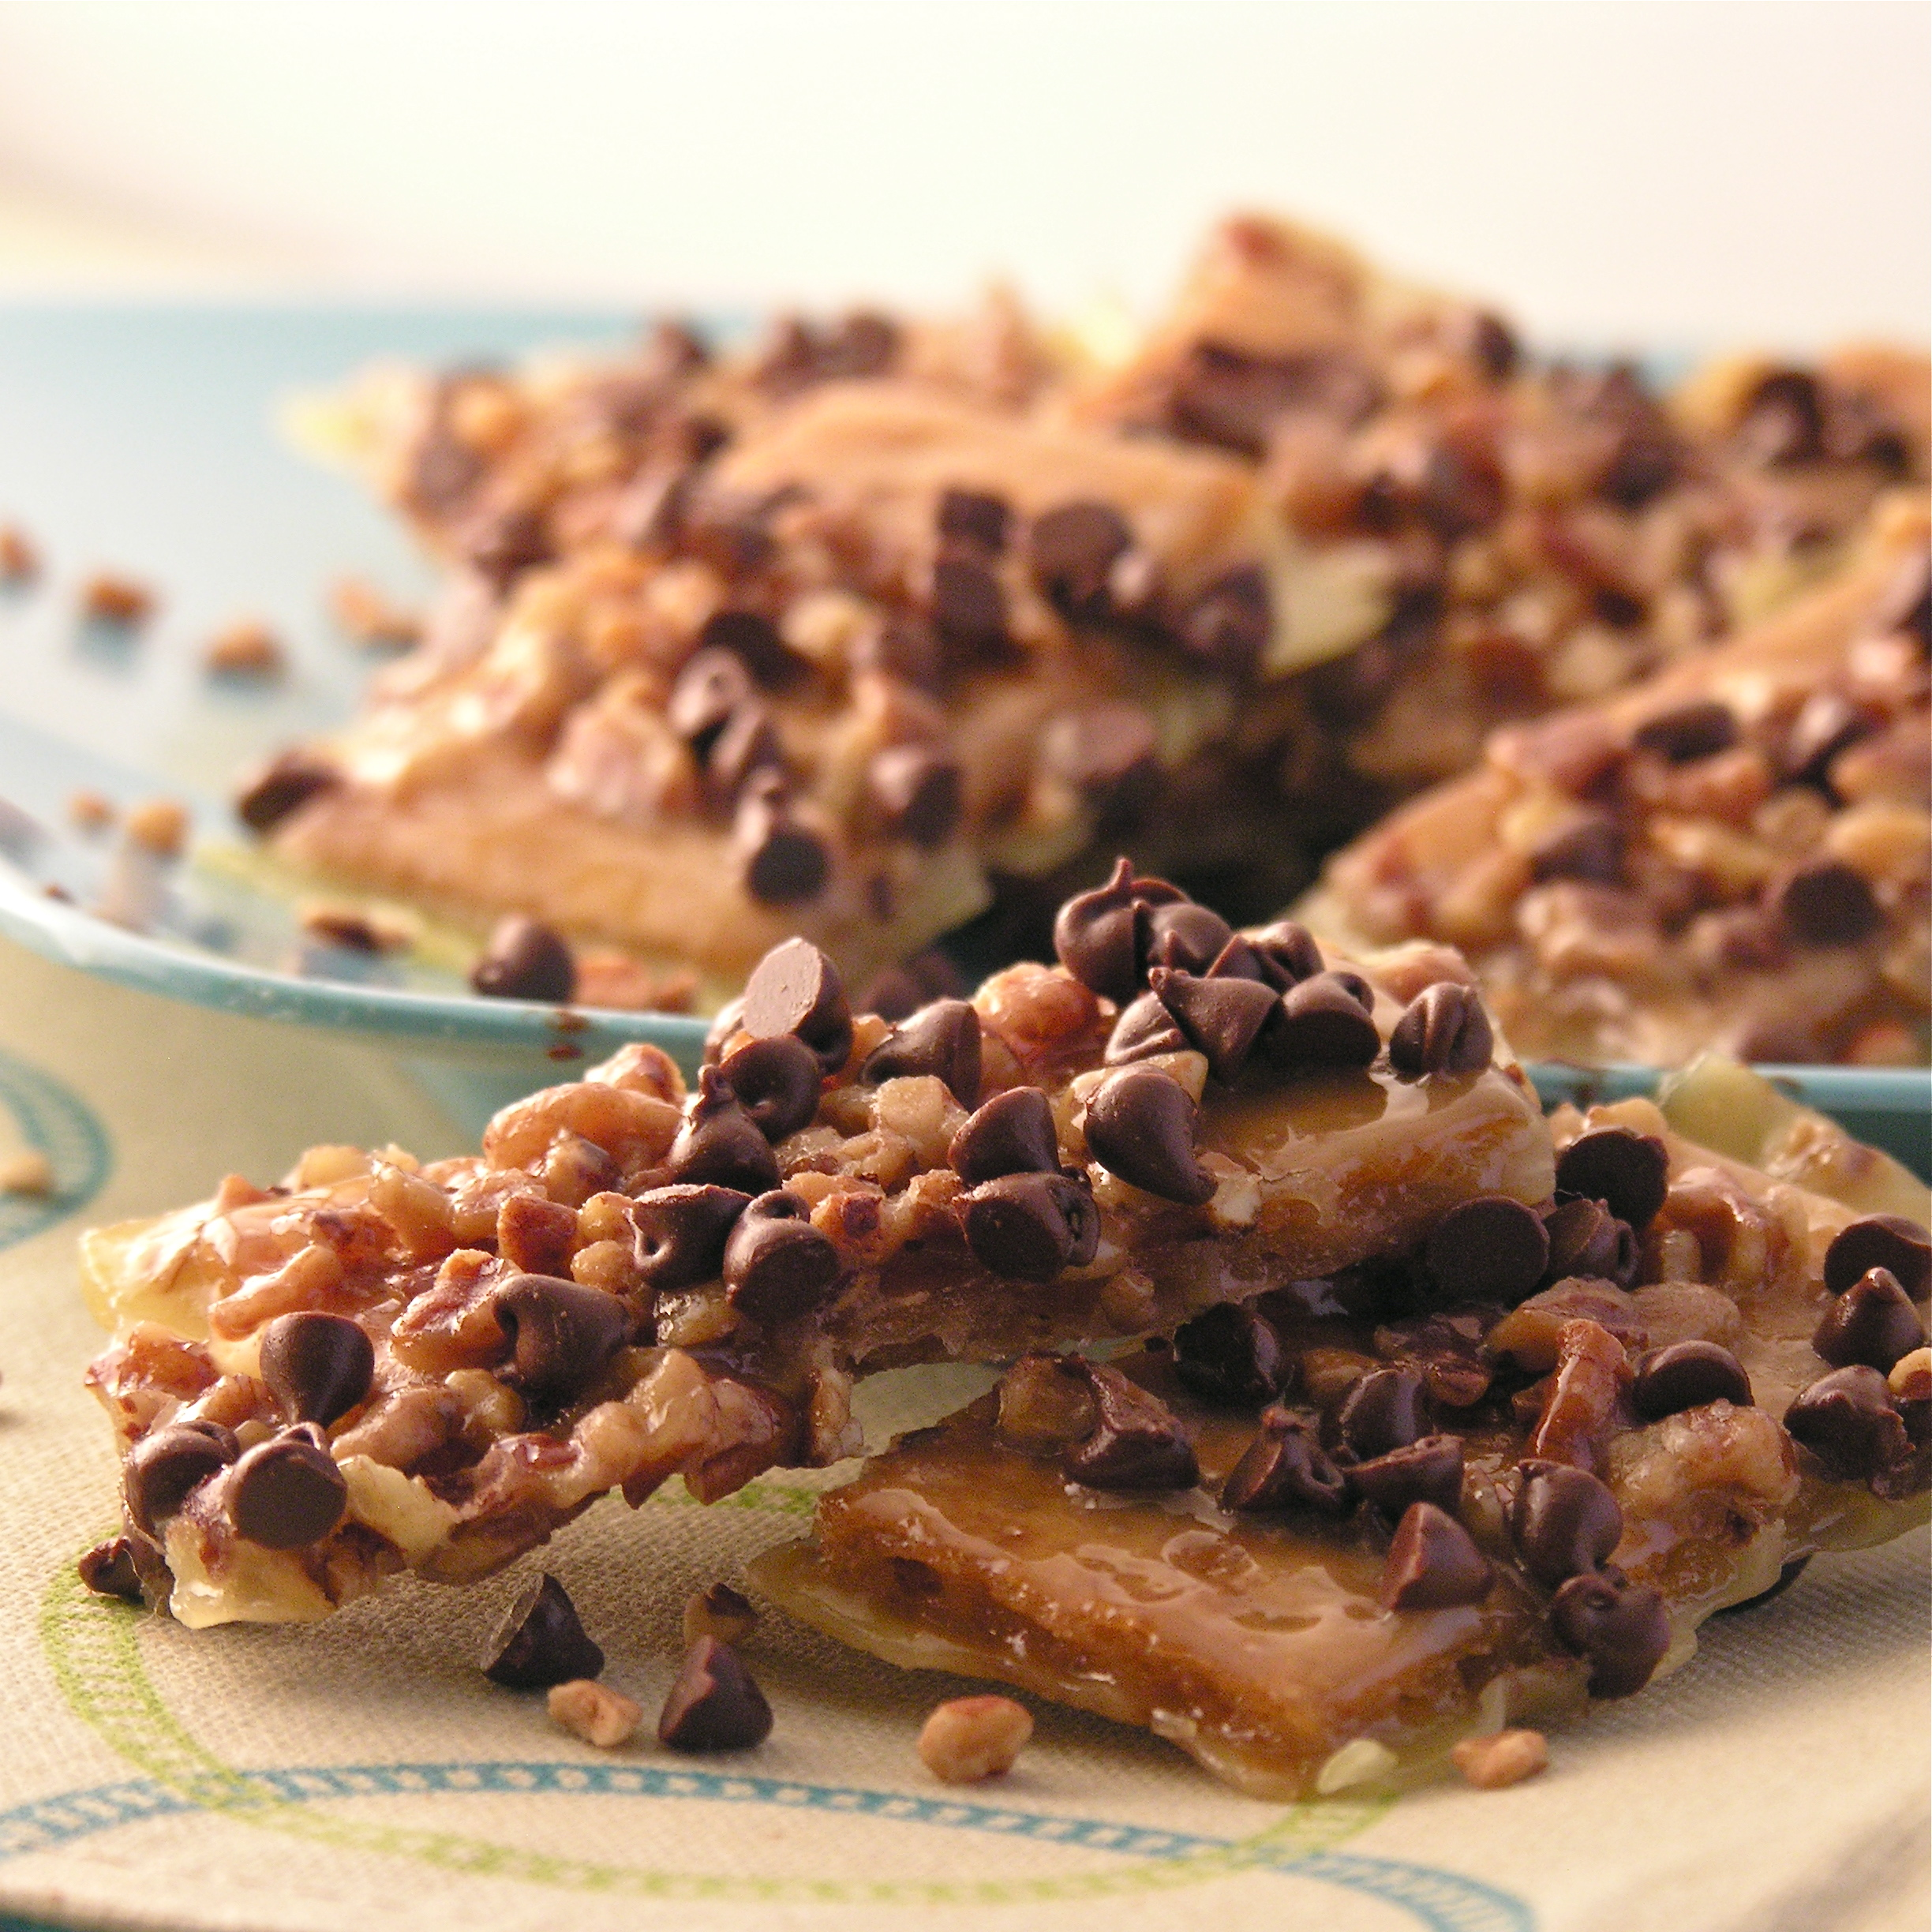 Crunchy toffee, pecans and chocolate make these bars irresistible ...